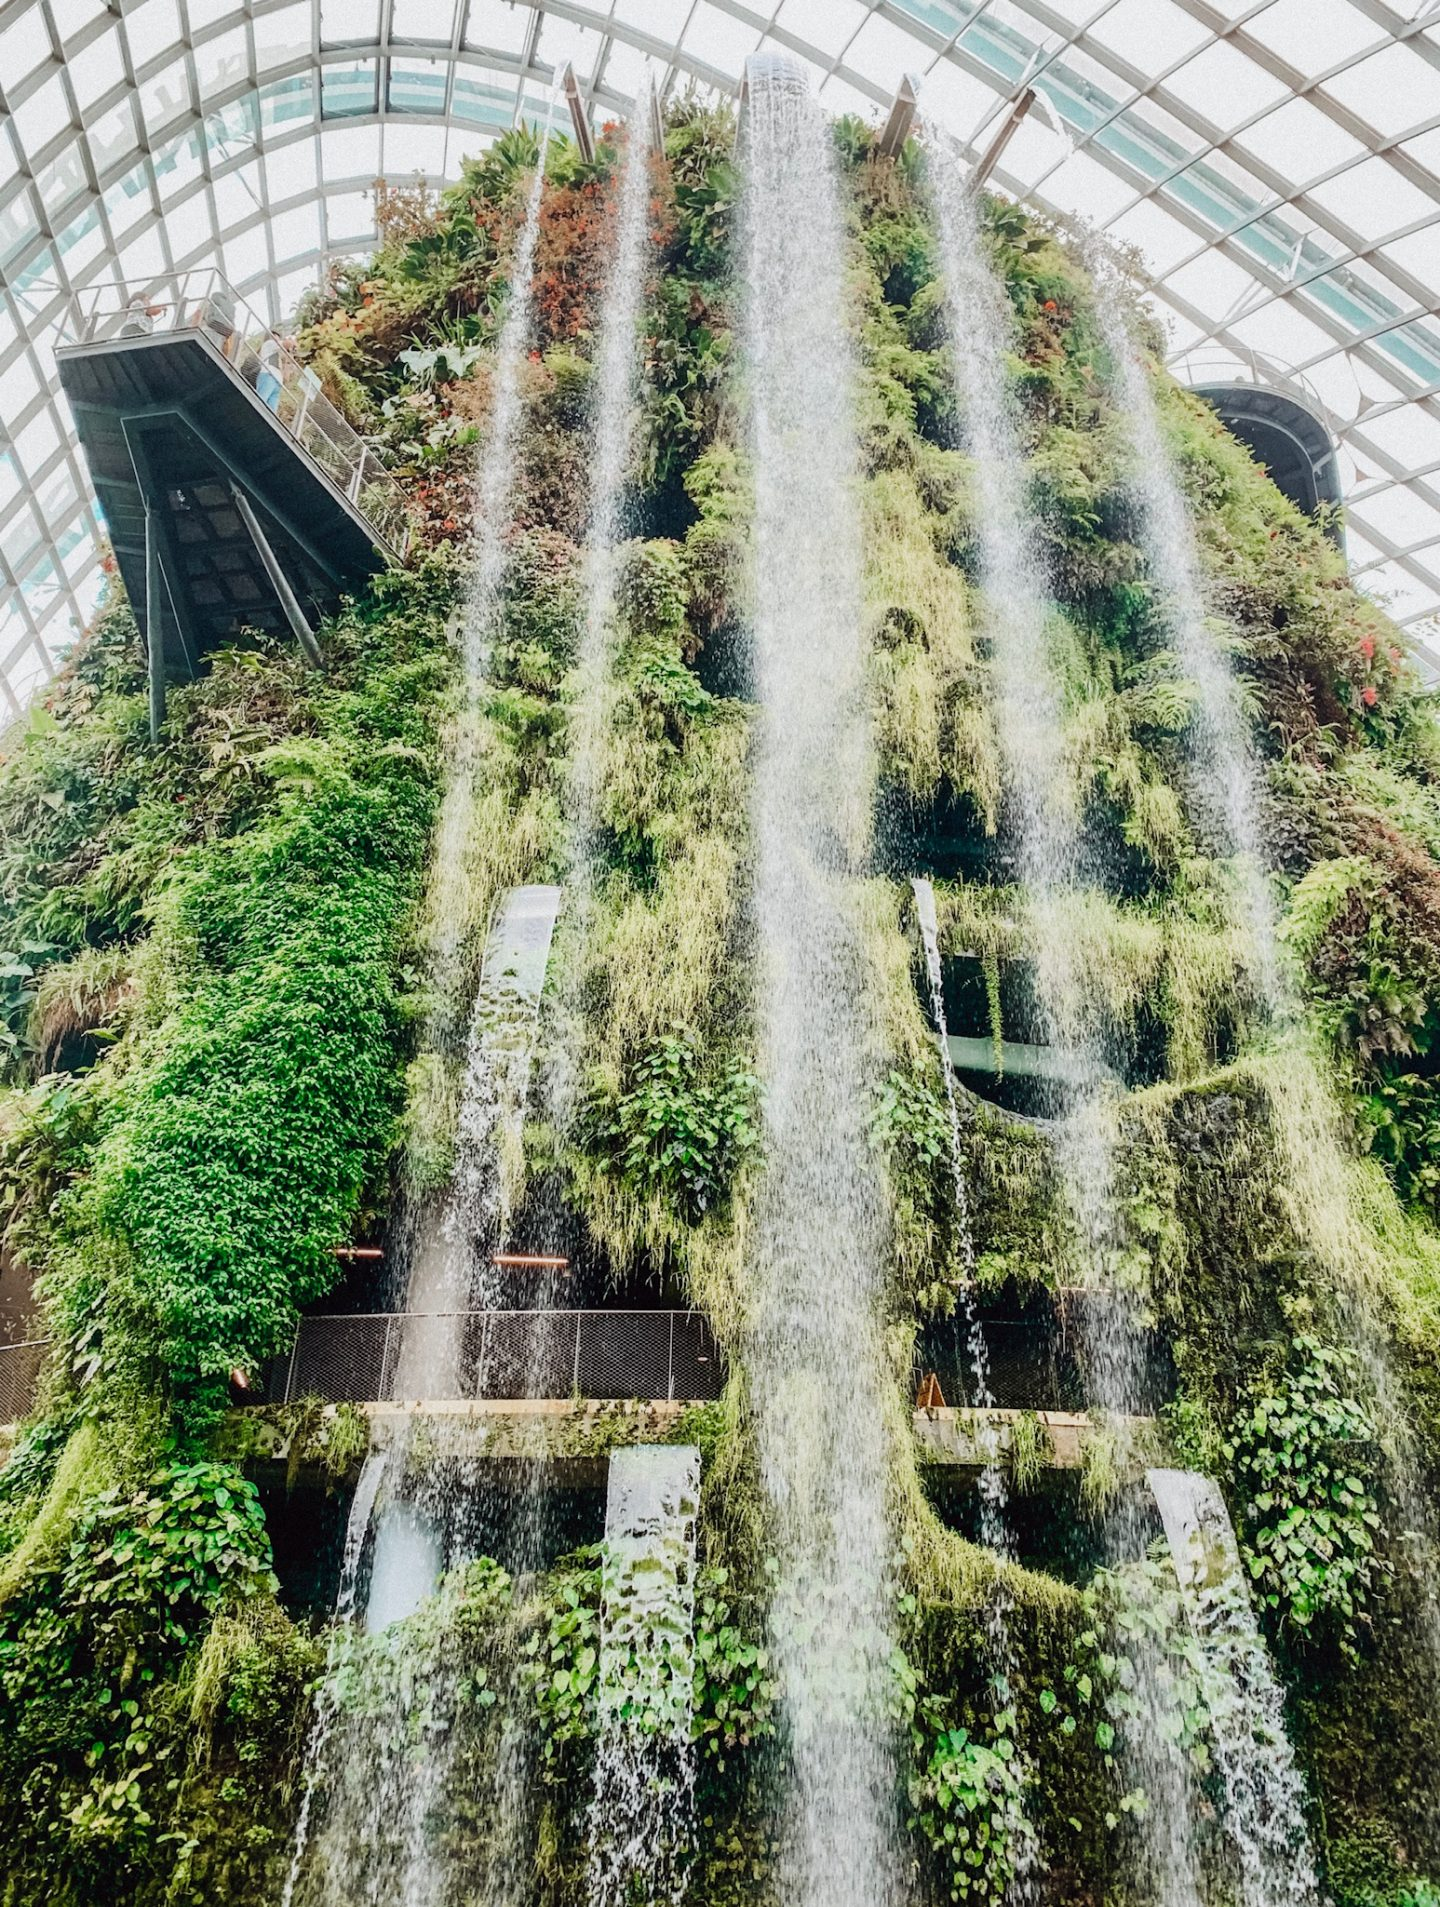 The world's tallest indoor waterfall in the Cloud Forest in Singapore!